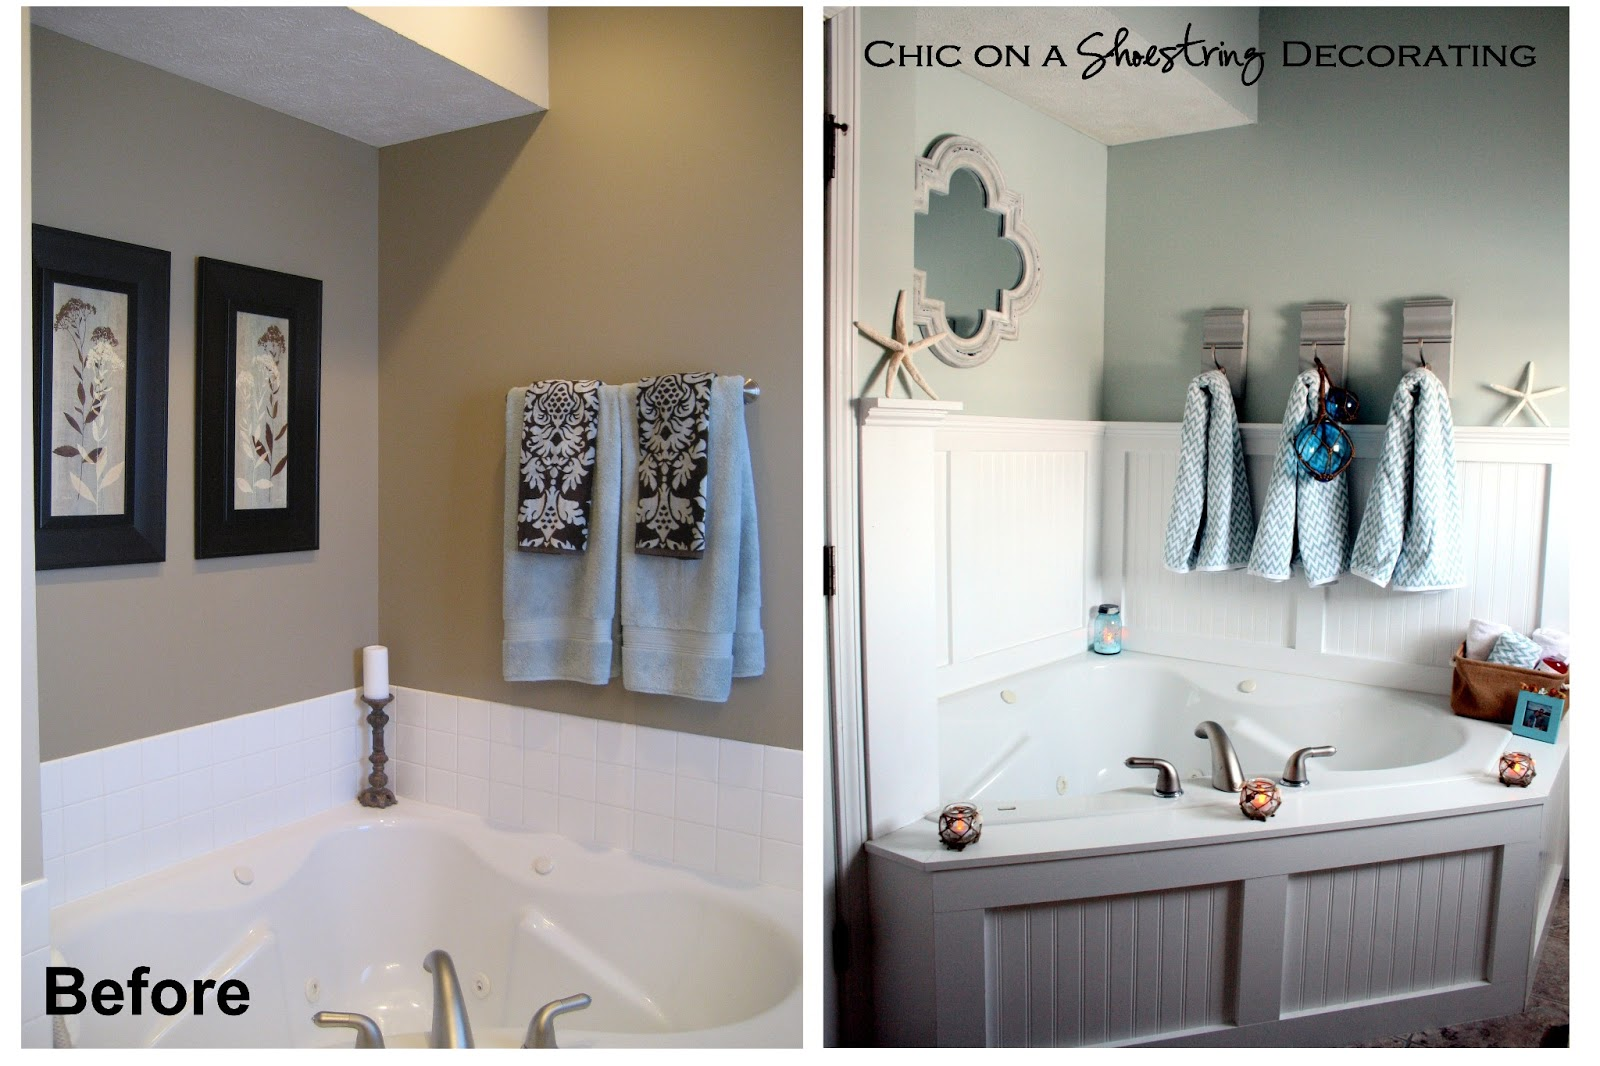 Beach Theme Bathrooms Chic On A Shoestring Decorating Beachy Bathroom Reveal